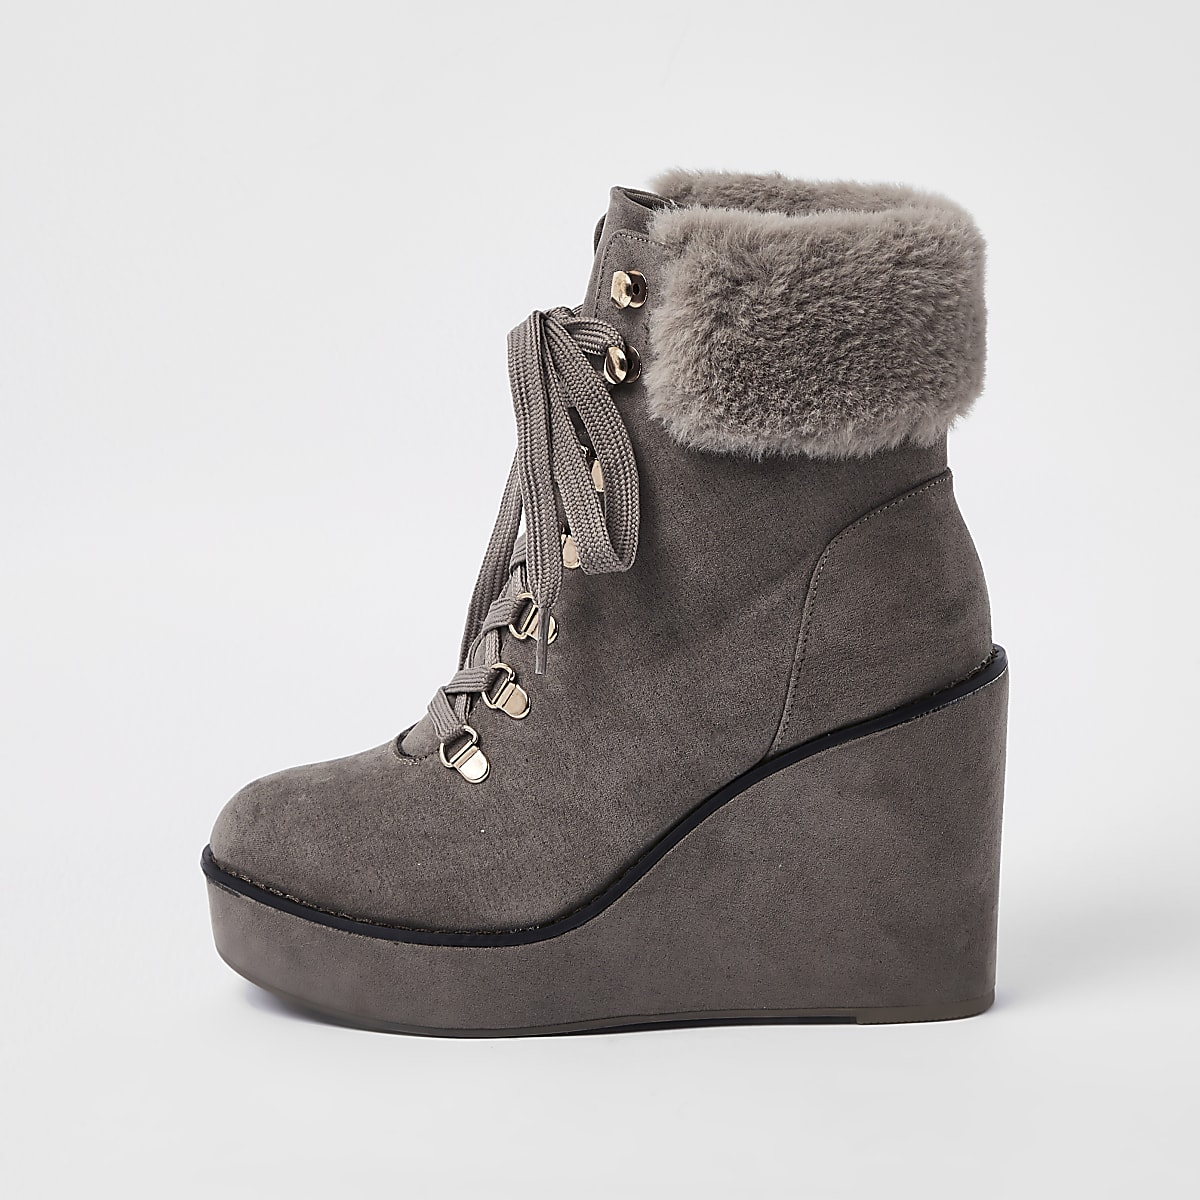 Grey lace-up wedge heel boots